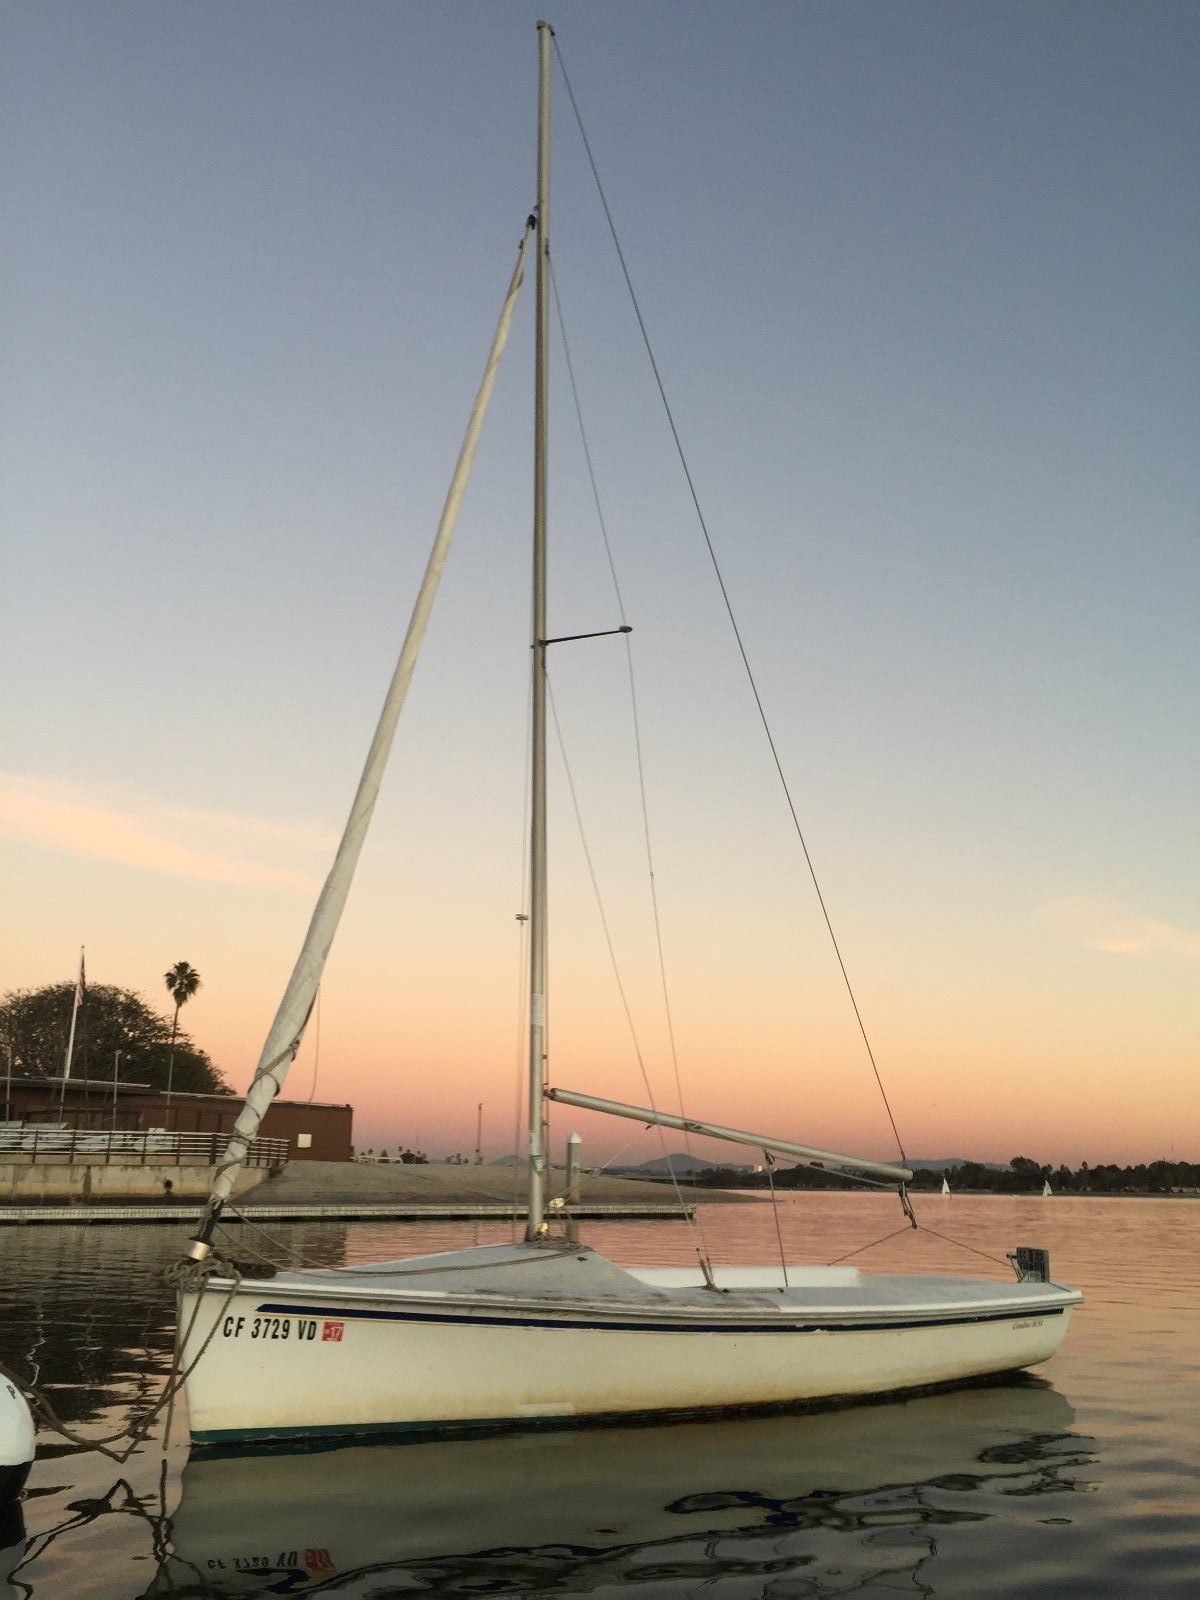 2001 Catalina sailboat